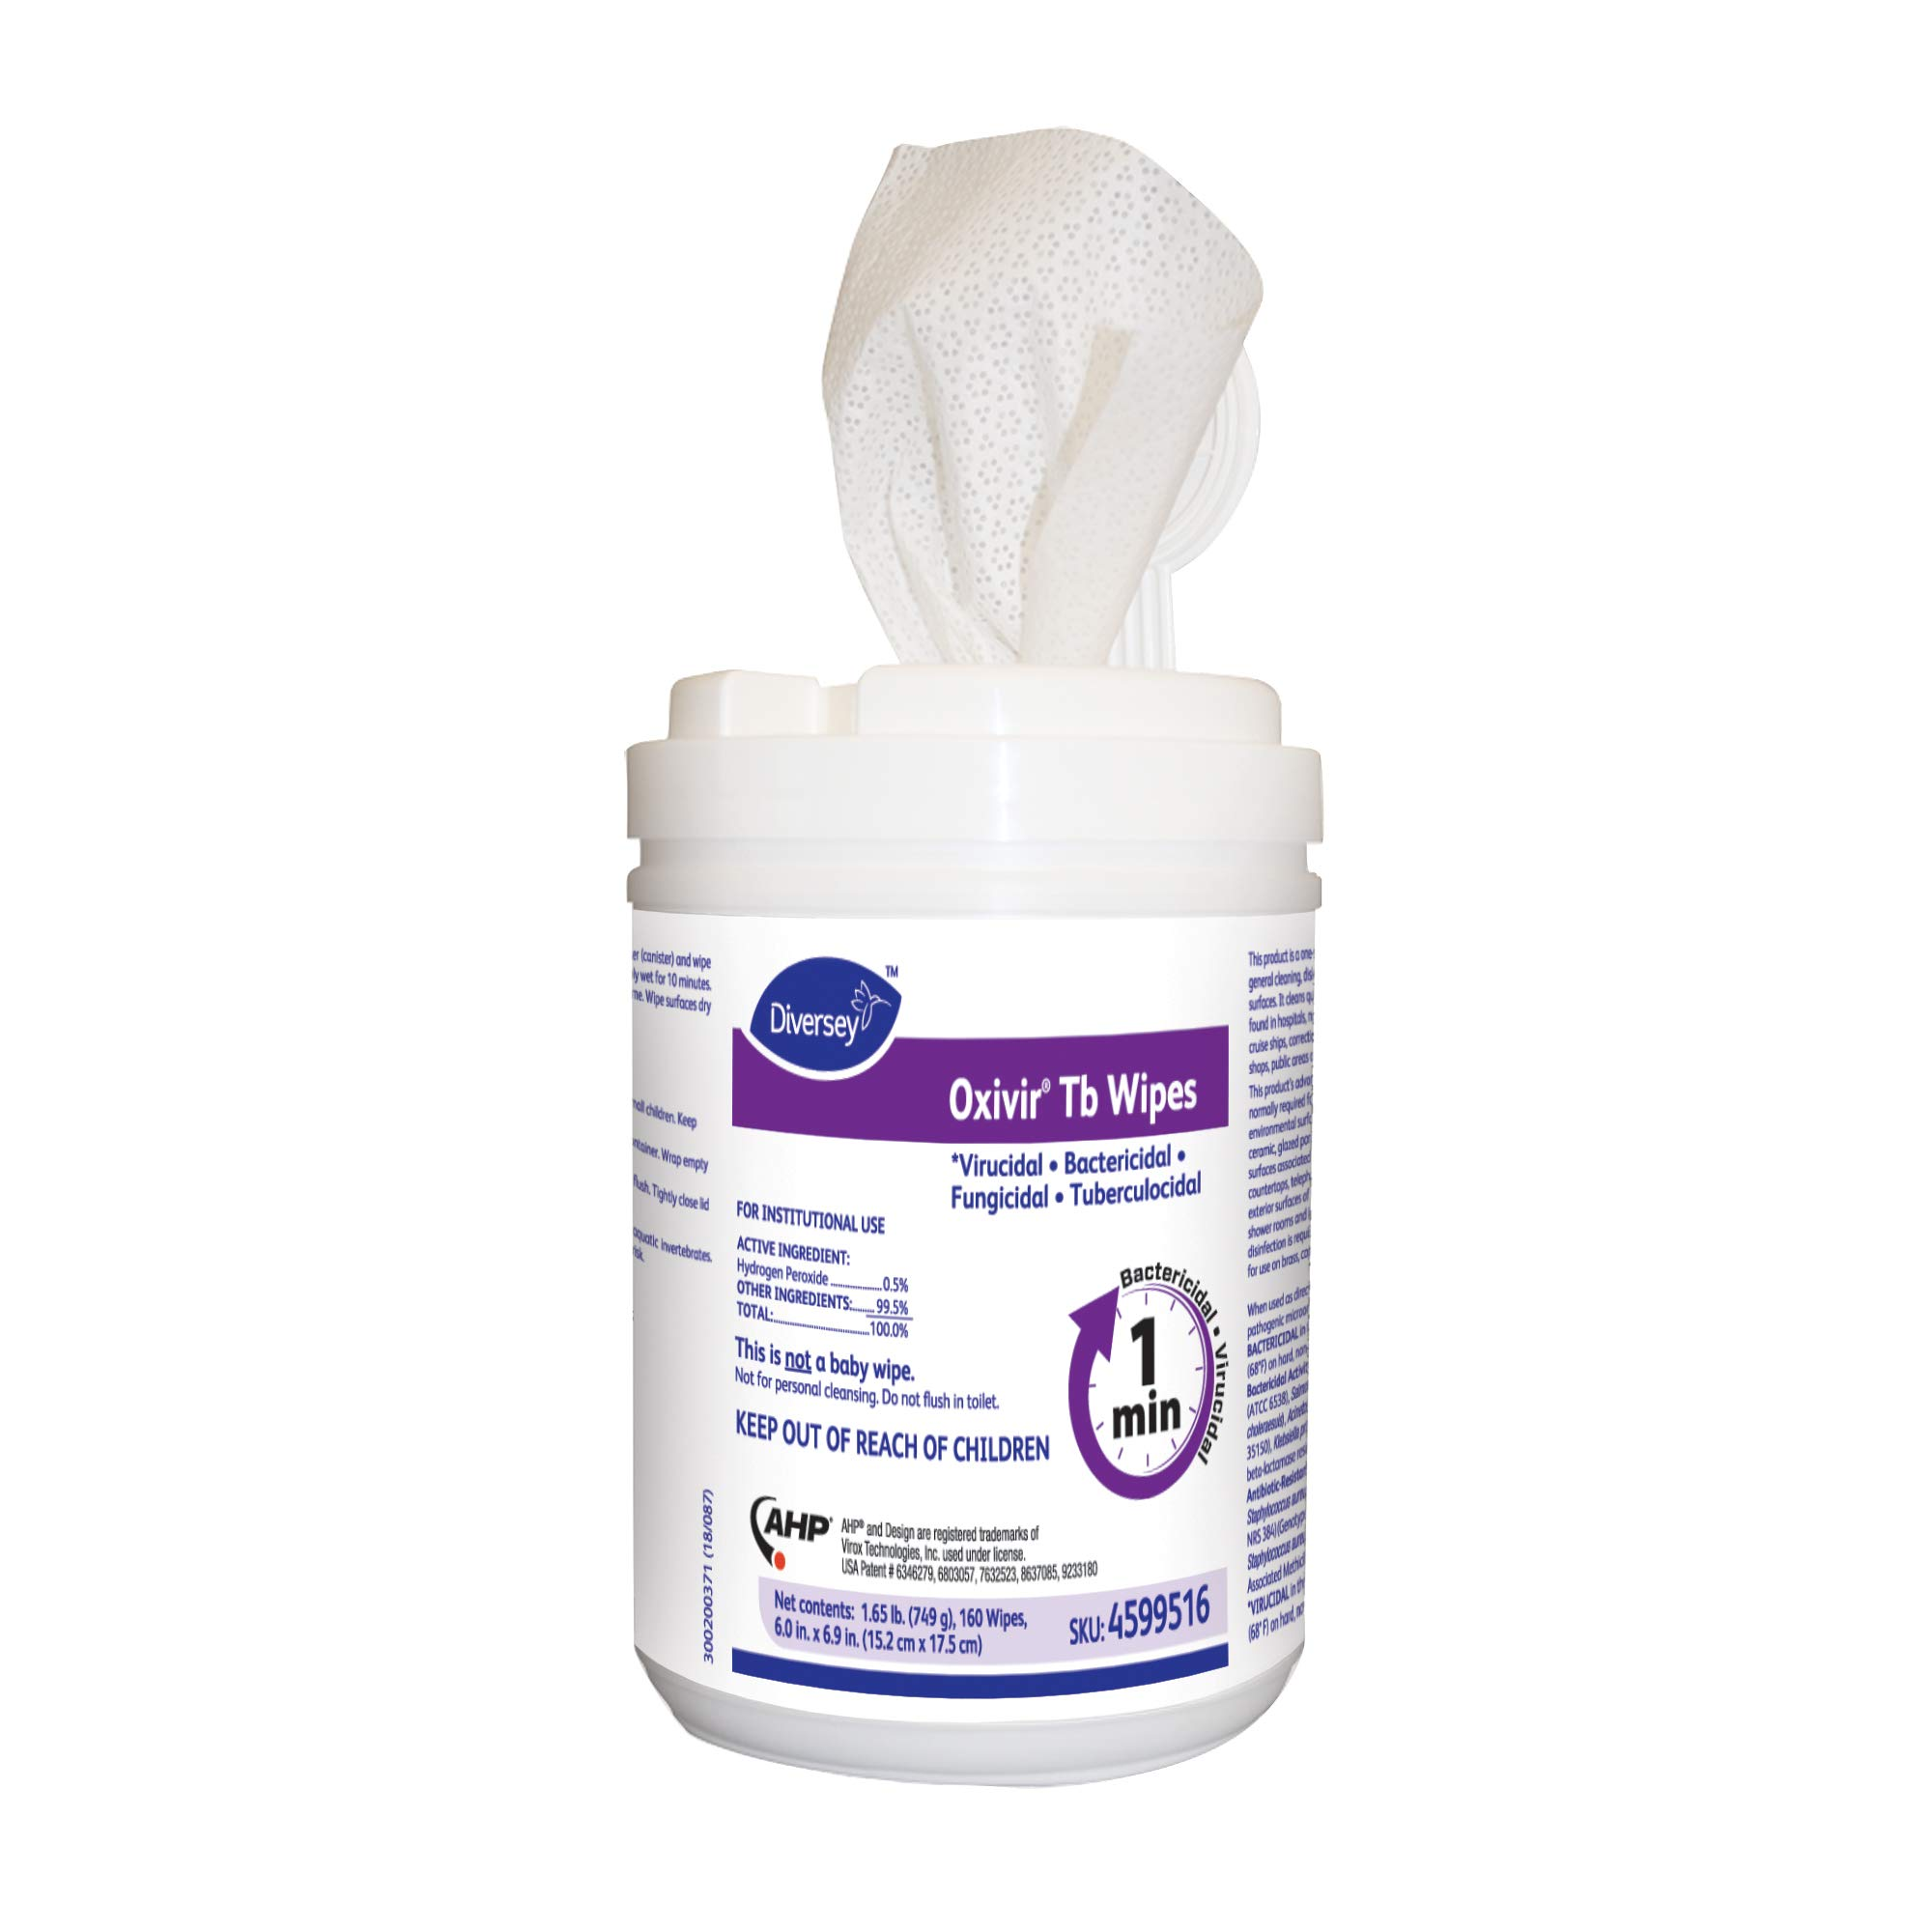 Diversey Oxivir Tb Disinfecting Wipes Value Pack, 6''x 7'' Wipe Size, 1920 Wipes (12 Packs of 160 Wipes)